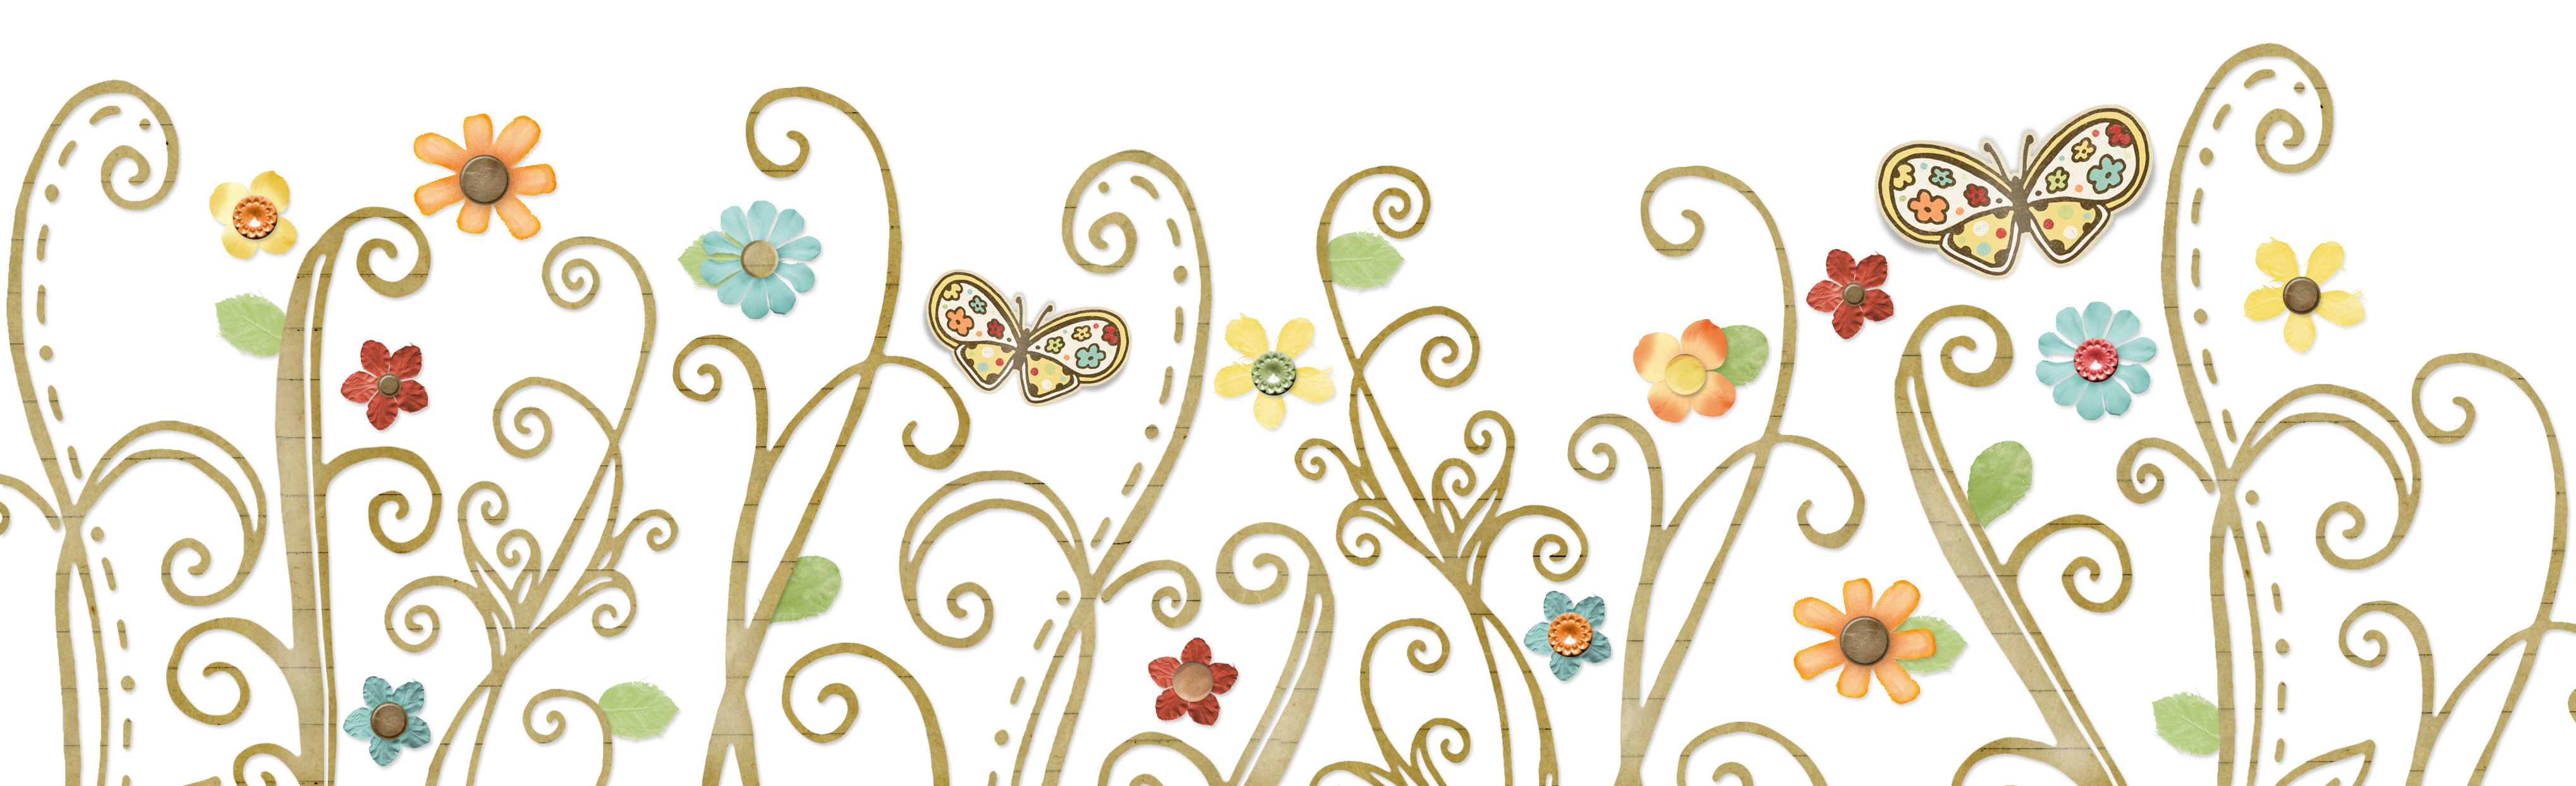 Flower swirl clipart vector transparent stock Images of Floral Swirls Border - #SpaceHero vector transparent stock